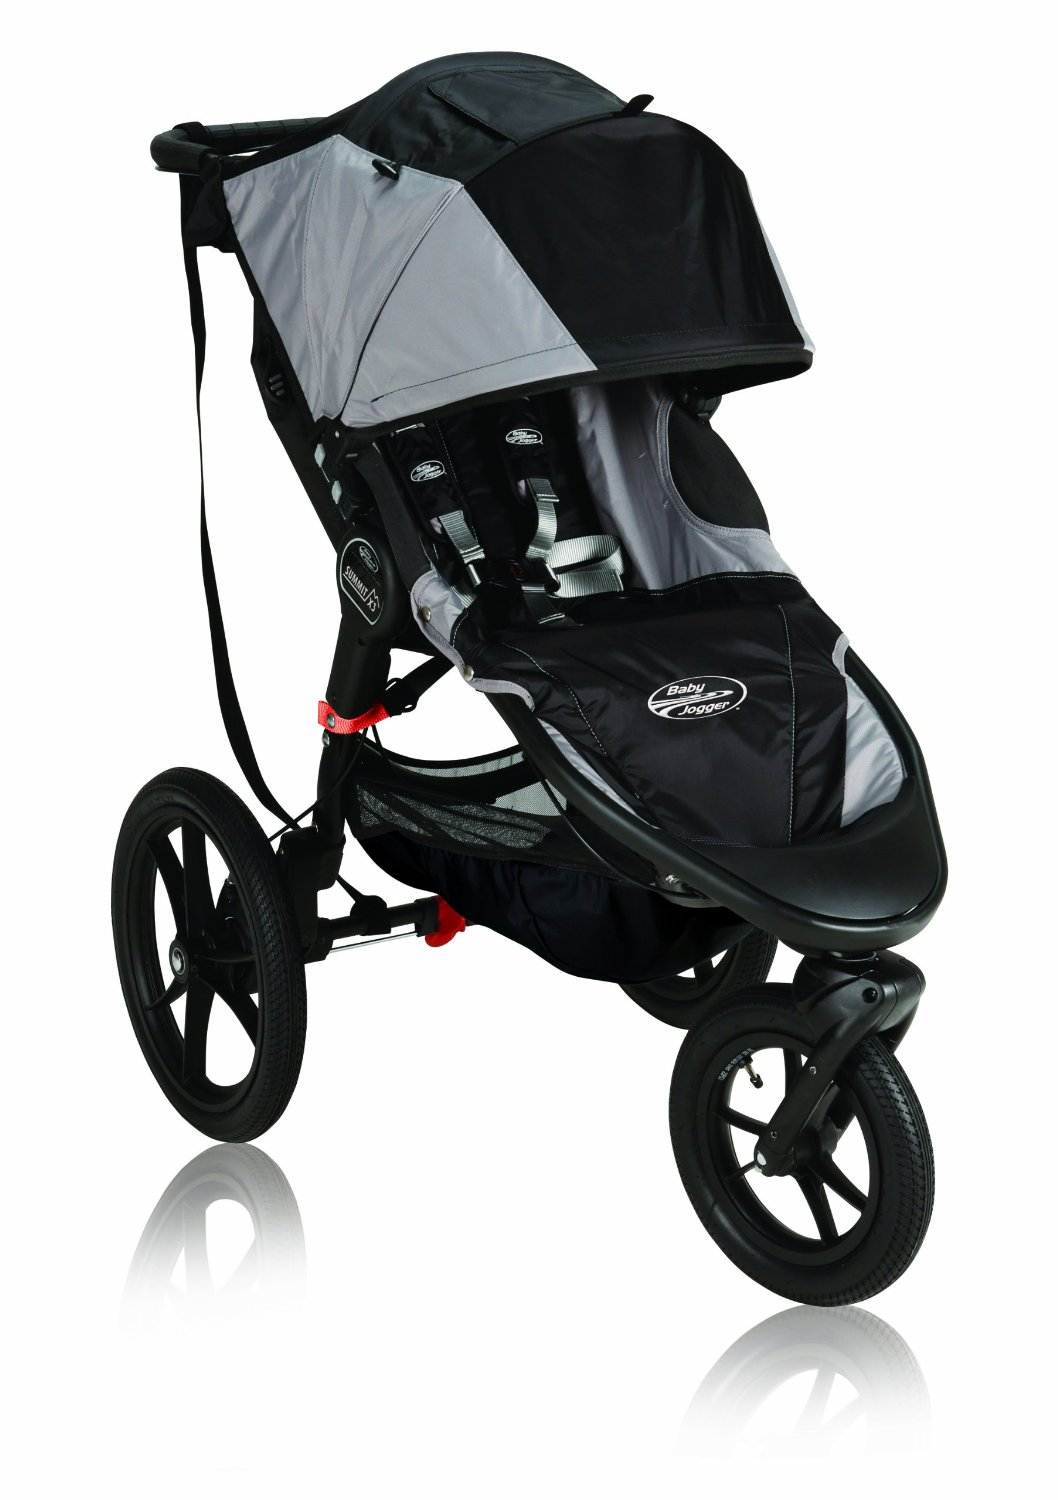 Best Jogging Stroller-Bob Revolution SE vs Baby Jogger Summit X3